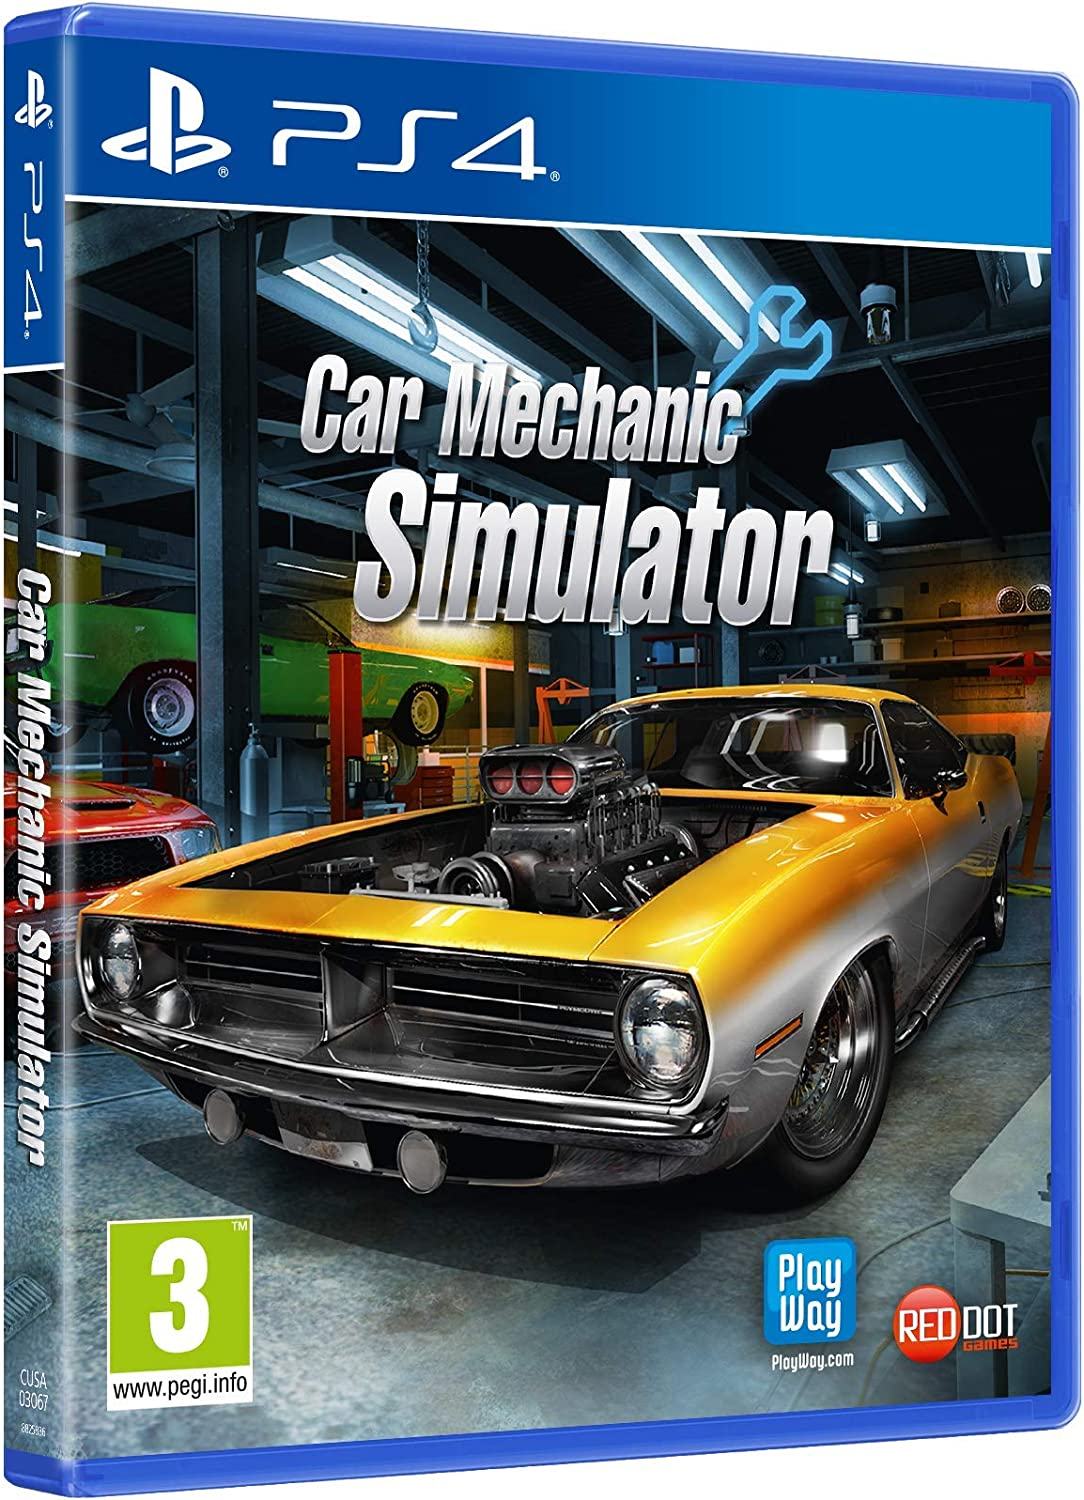 Car Mechanic Simulator (Xbox One): Amazon co uk: PC & Video Games